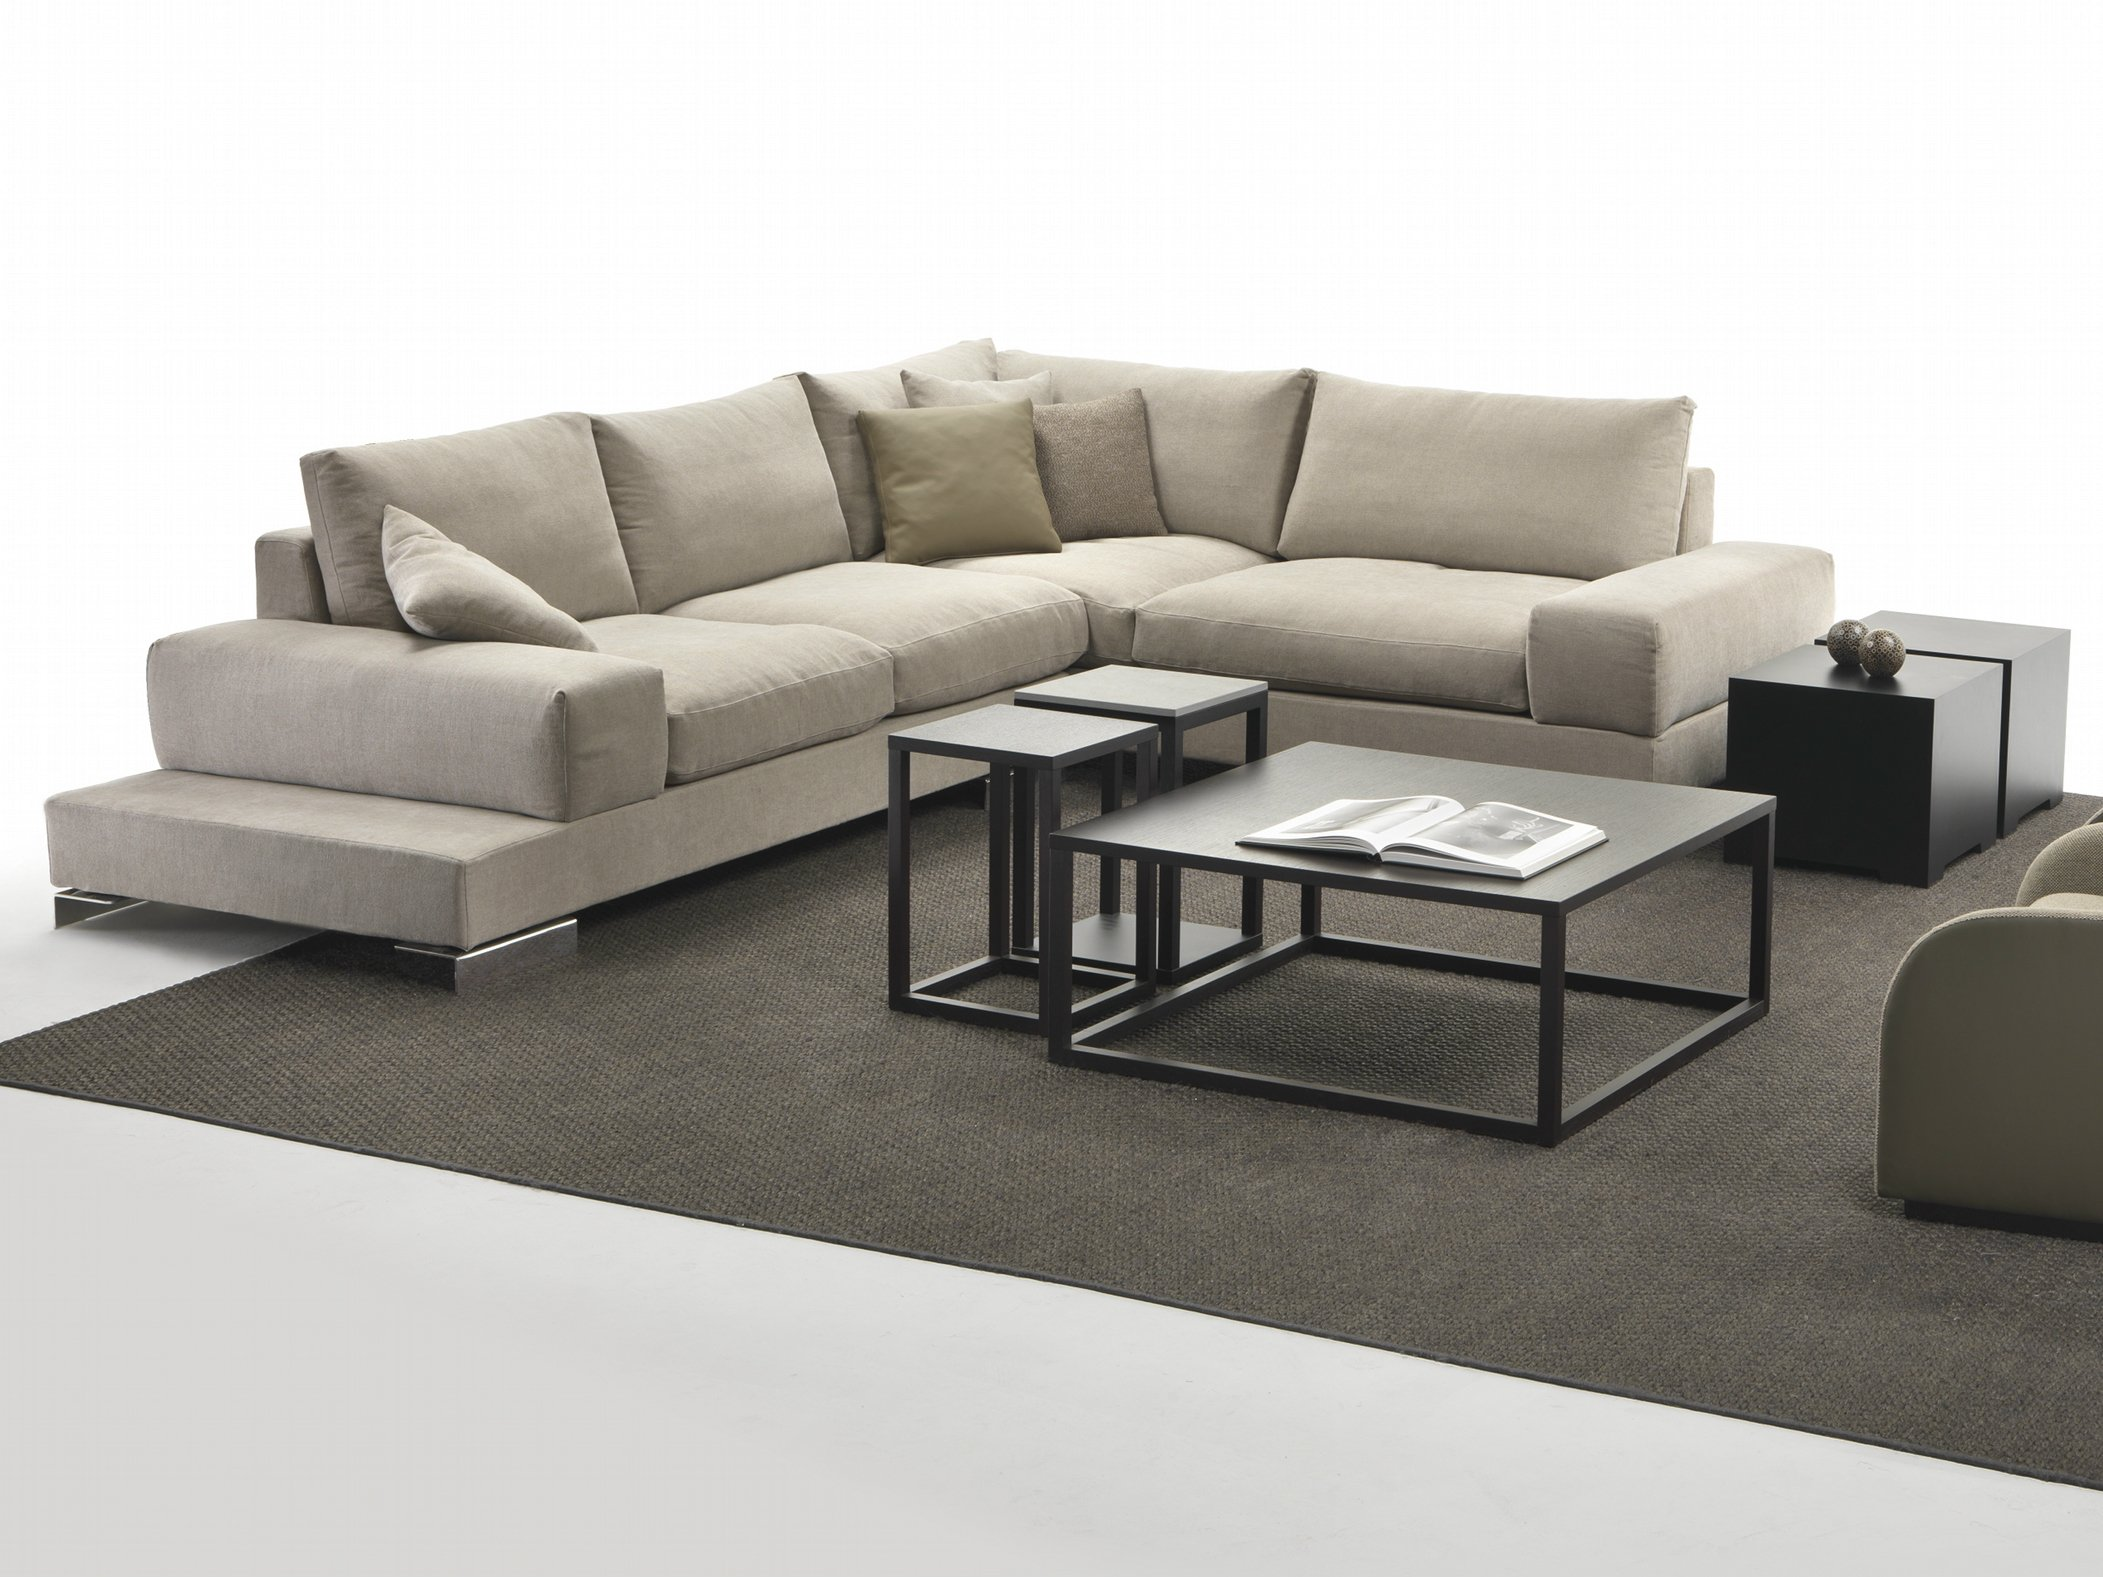 Albert canap composable by giulio marelli italia design - Sofas en esquina ...